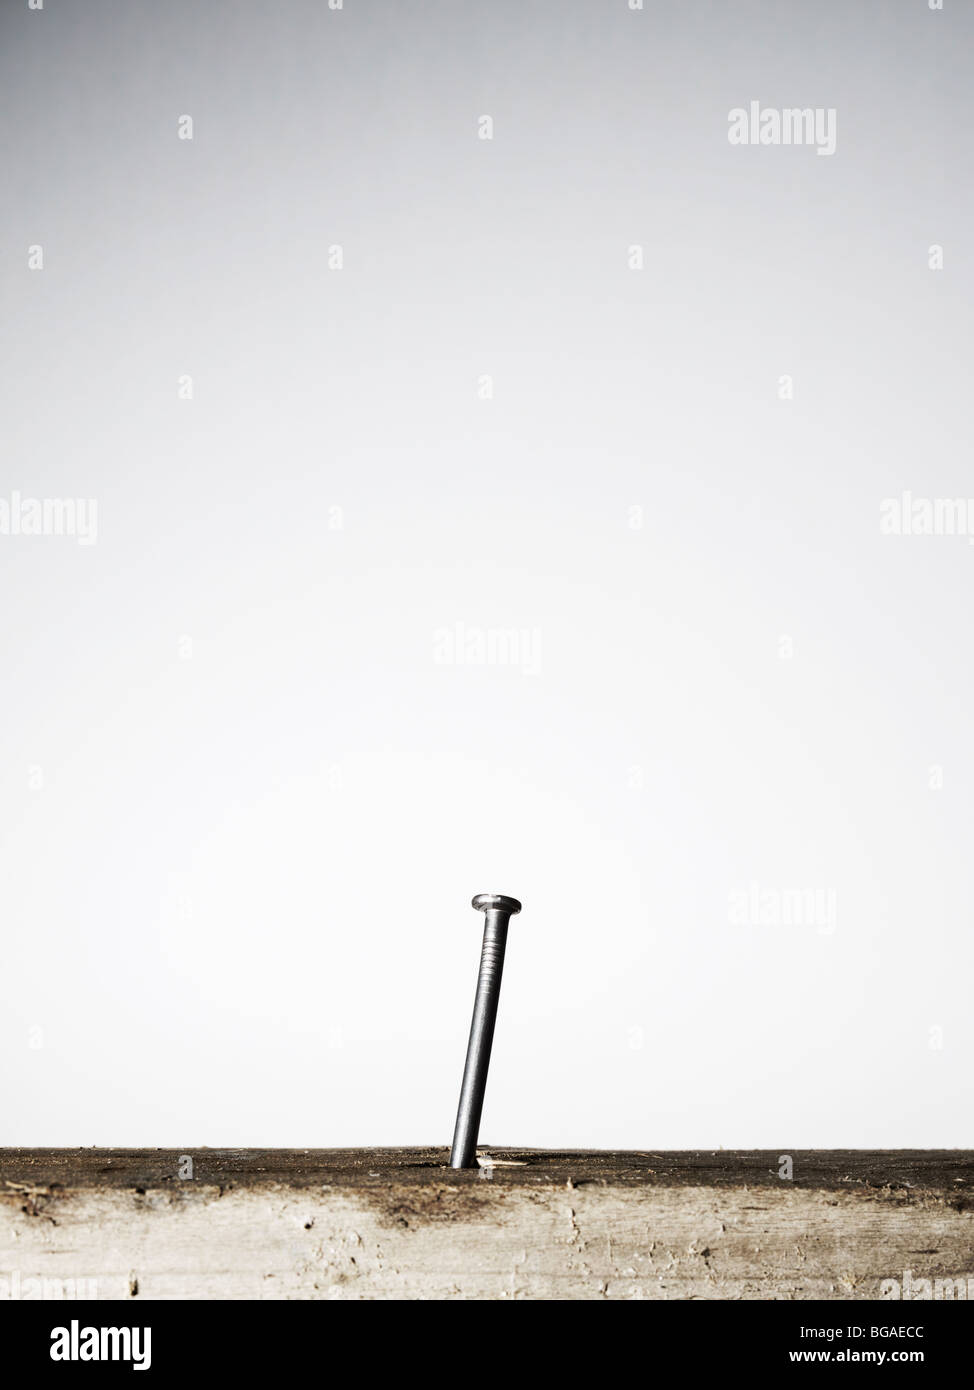 Nail sticking out of wooden board Stock Photo